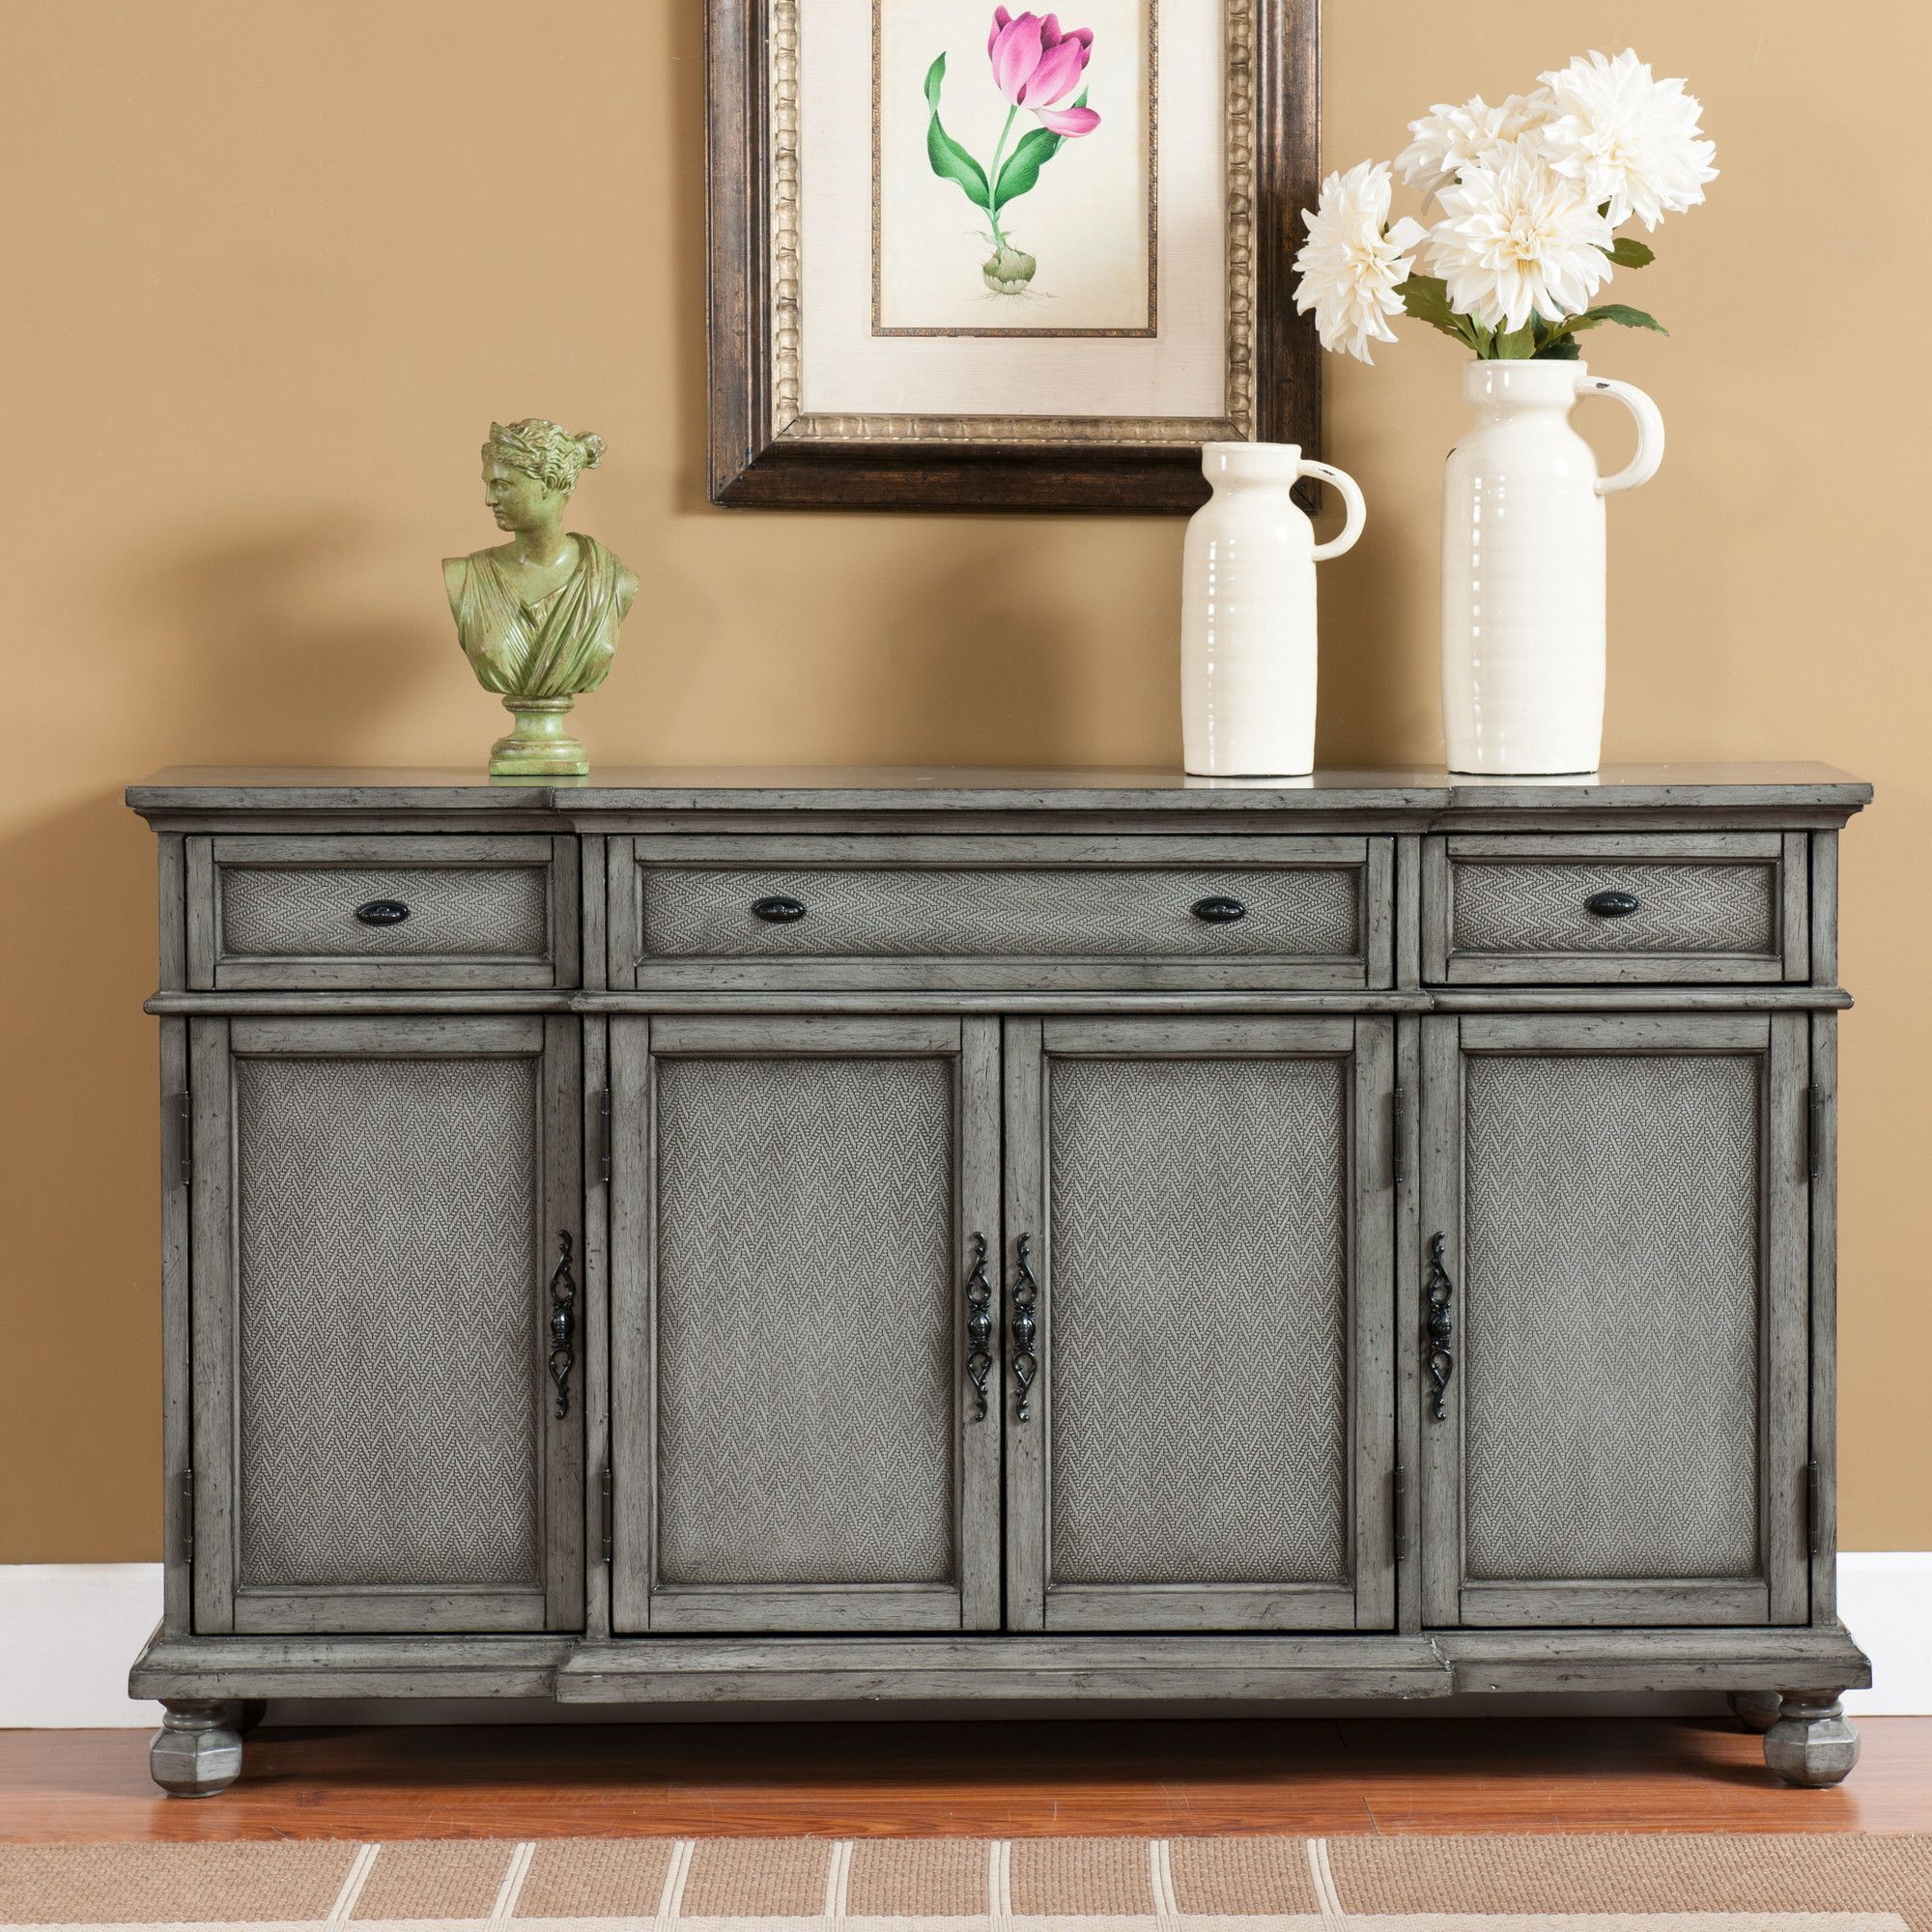 Giulia 3 Drawer Credenza   Family Room   Sideboard Within Giulia 3 Drawer Credenzas (View 3 of 30)